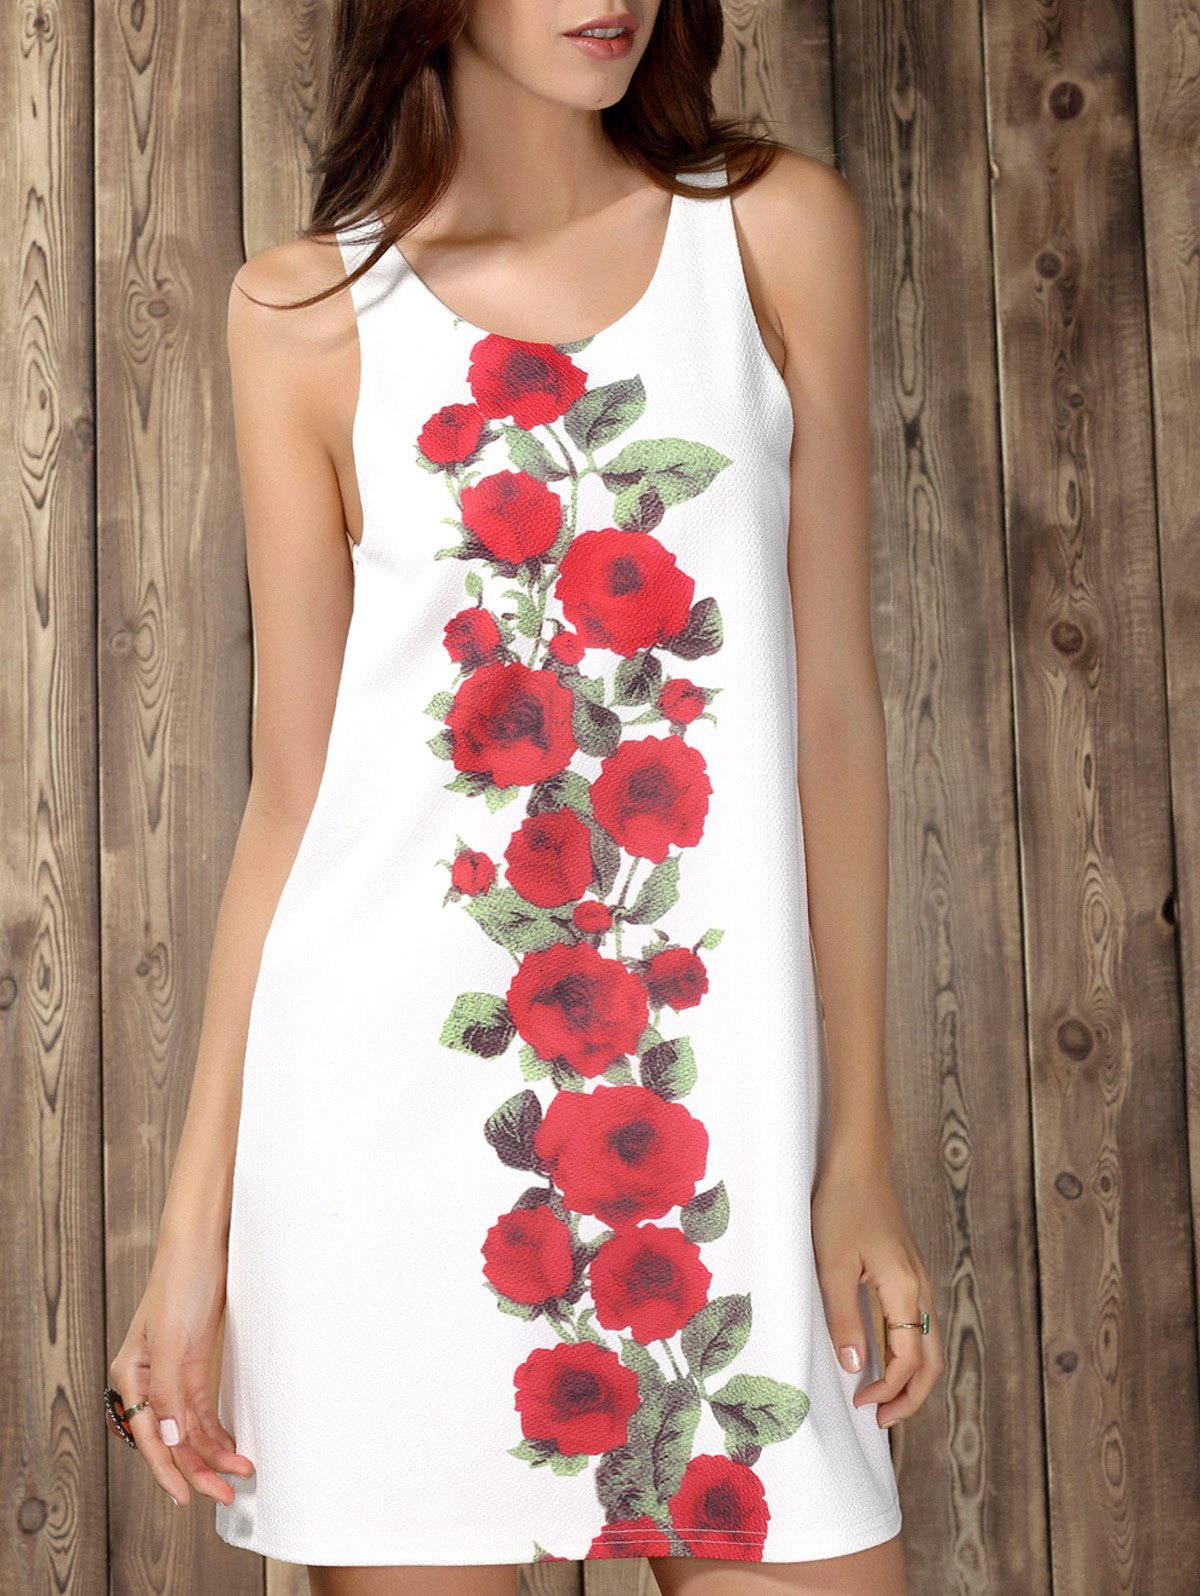 Chic Sleeveless Scoop Collar Floral Print Women's Dress - WHITE S